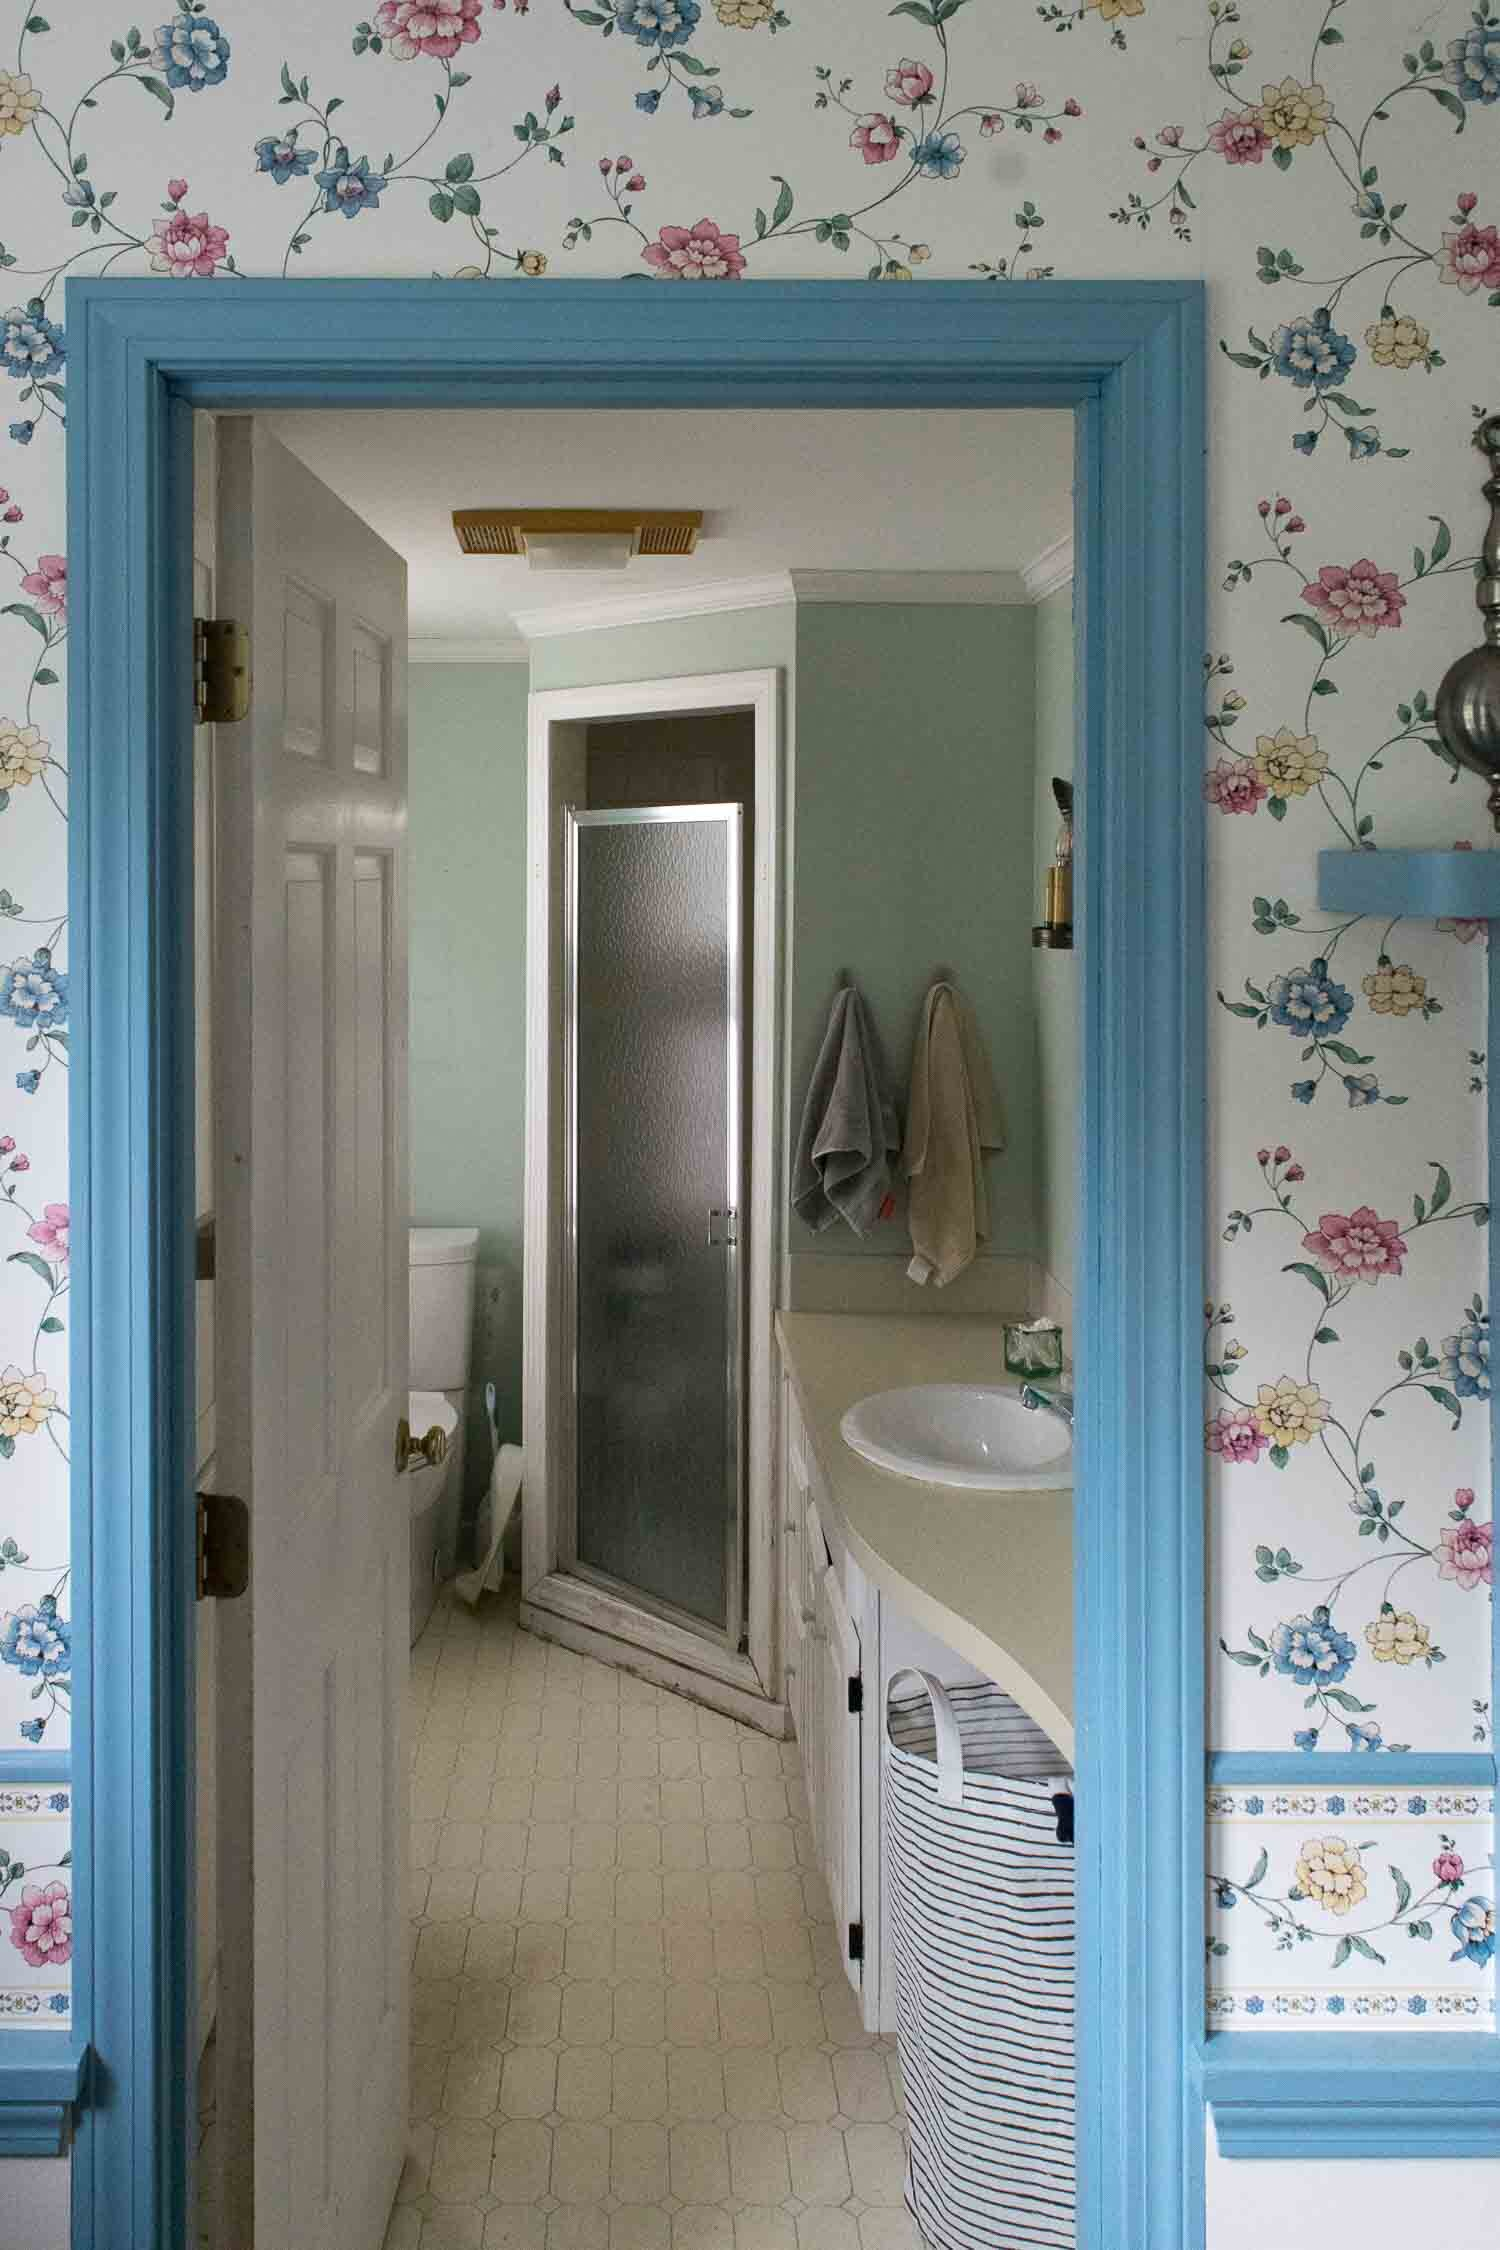 Redesigning a Small Corner Shower (+ other bathroom reno updates) | Remodel by This Giant Life-4204.jpg